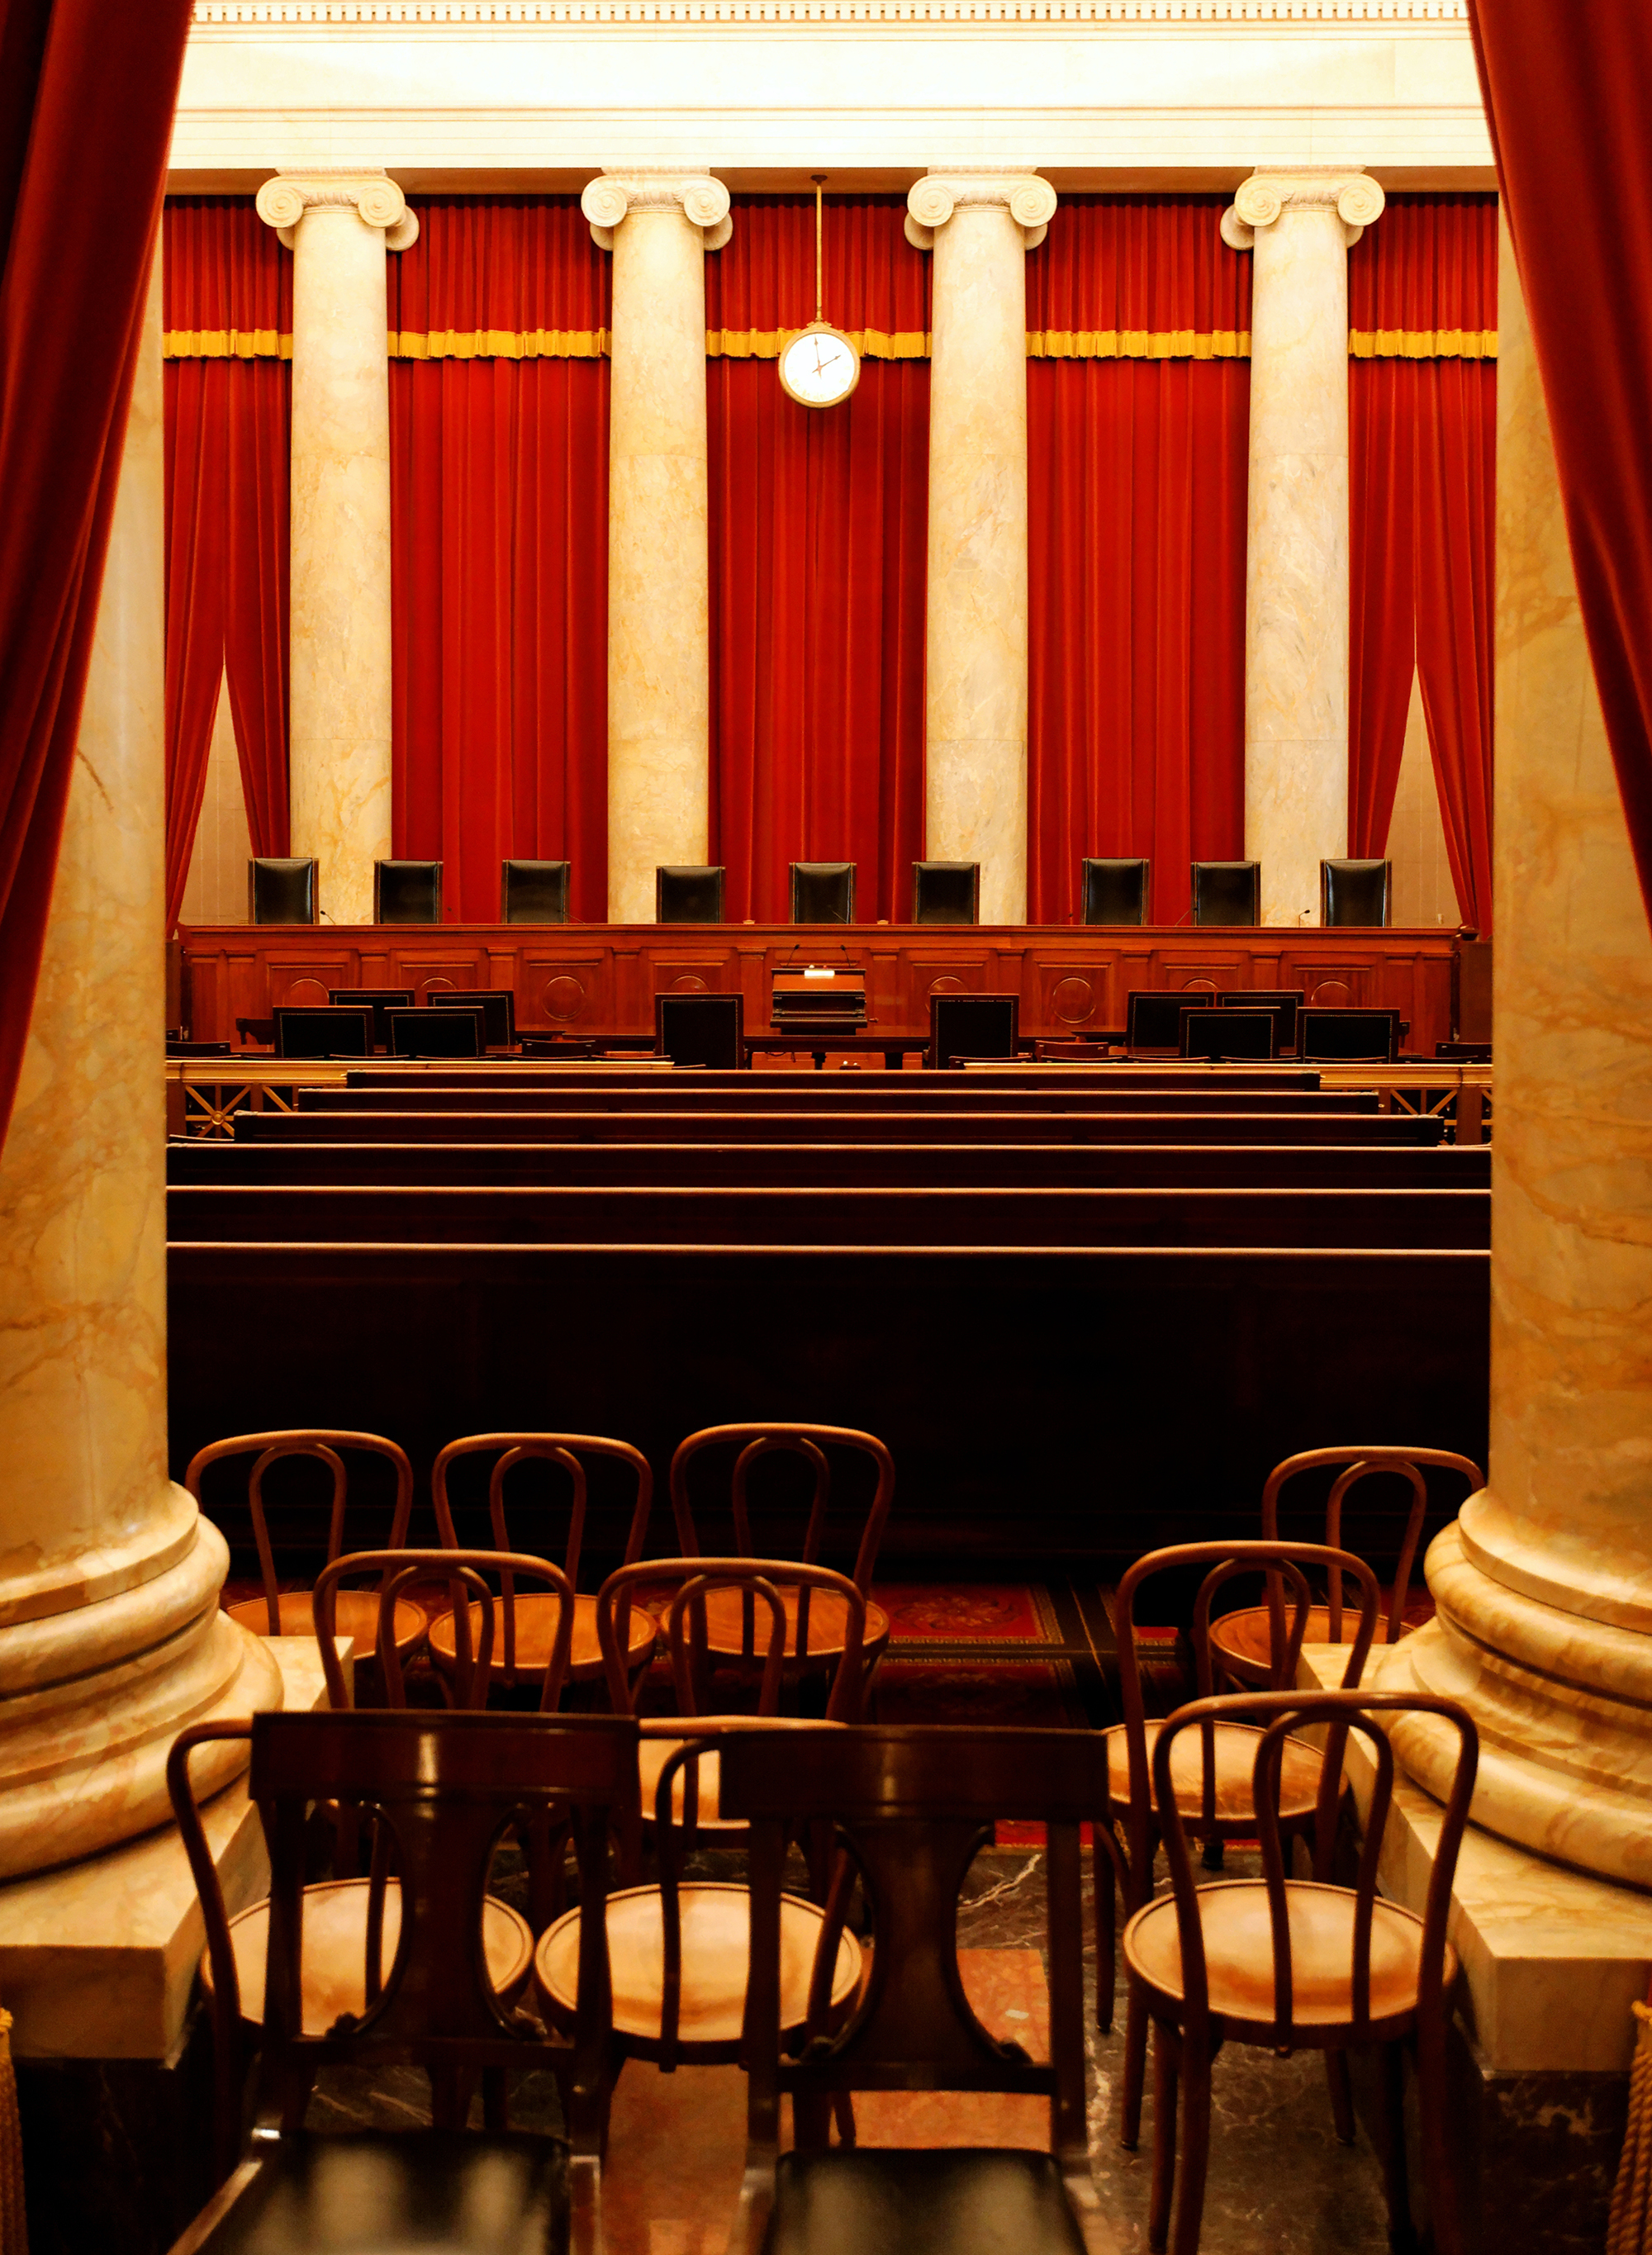 A-shot-of-the-Supreme-Court-of-the-United-States-of-America